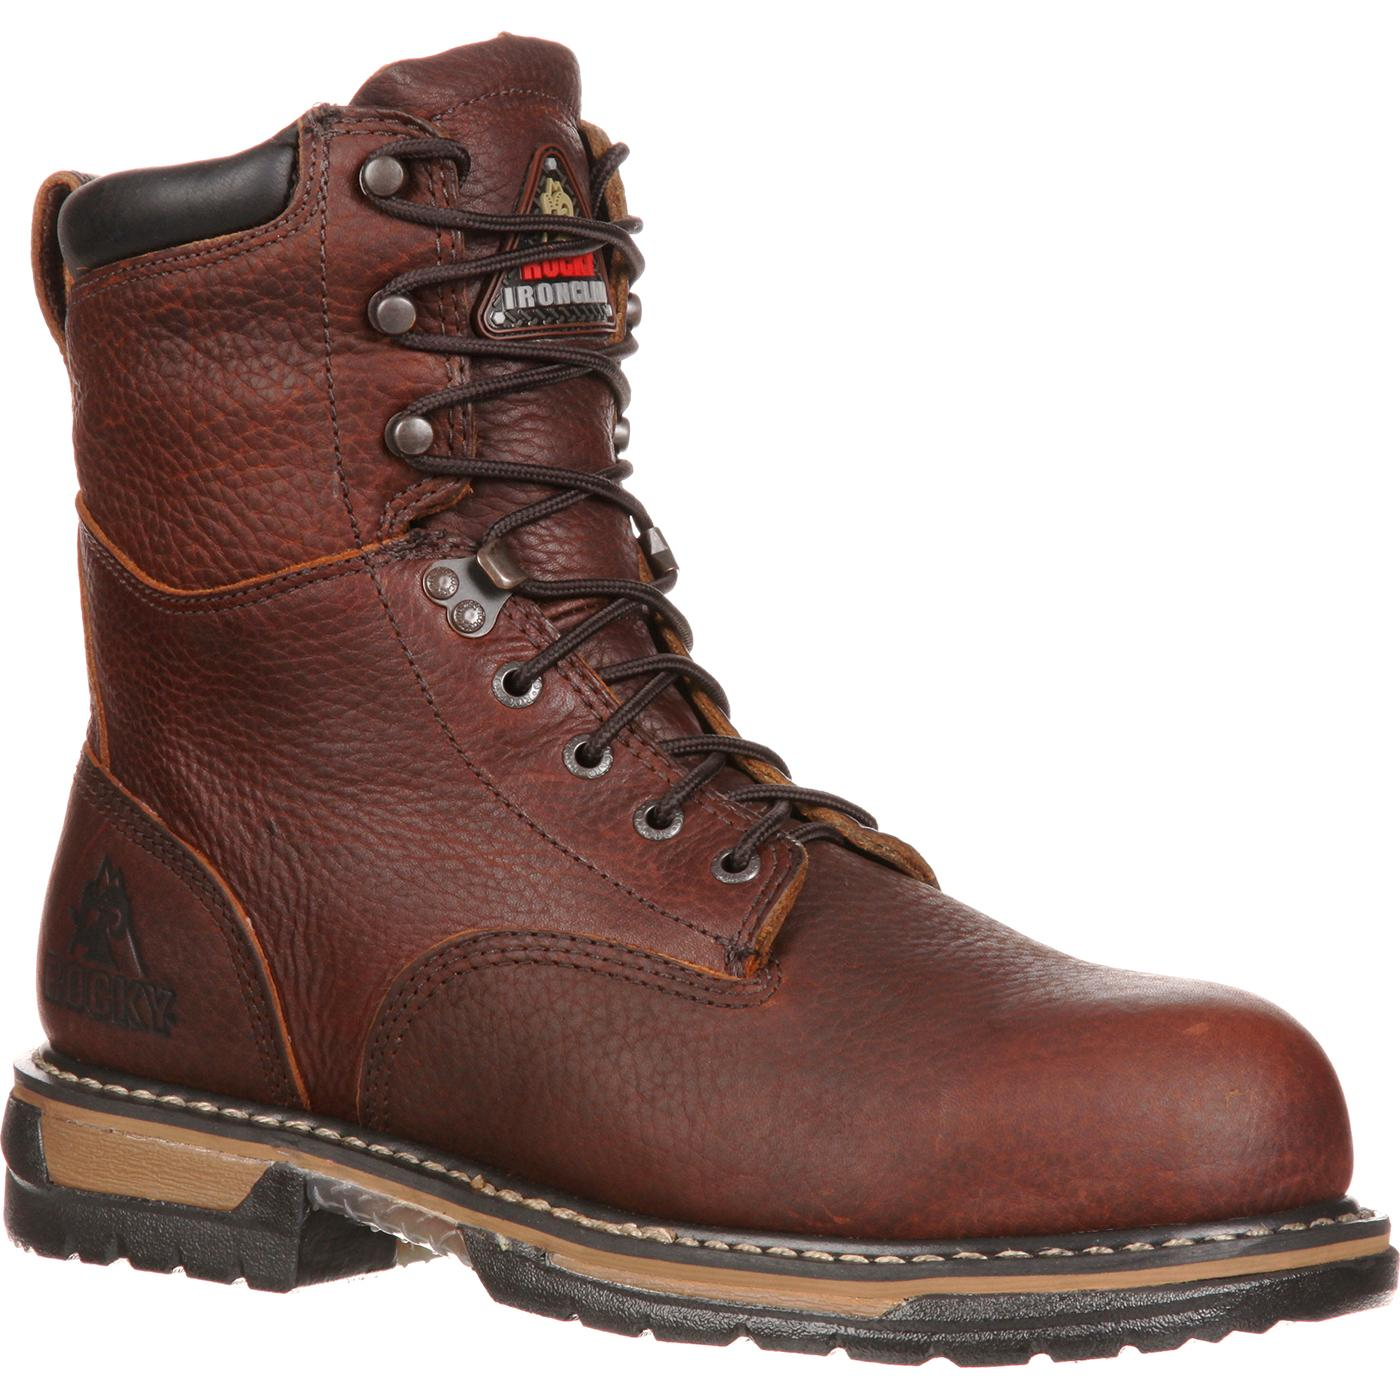 Rocky IronClad Men's Steel Toe Waterproof Work Boot, #6693